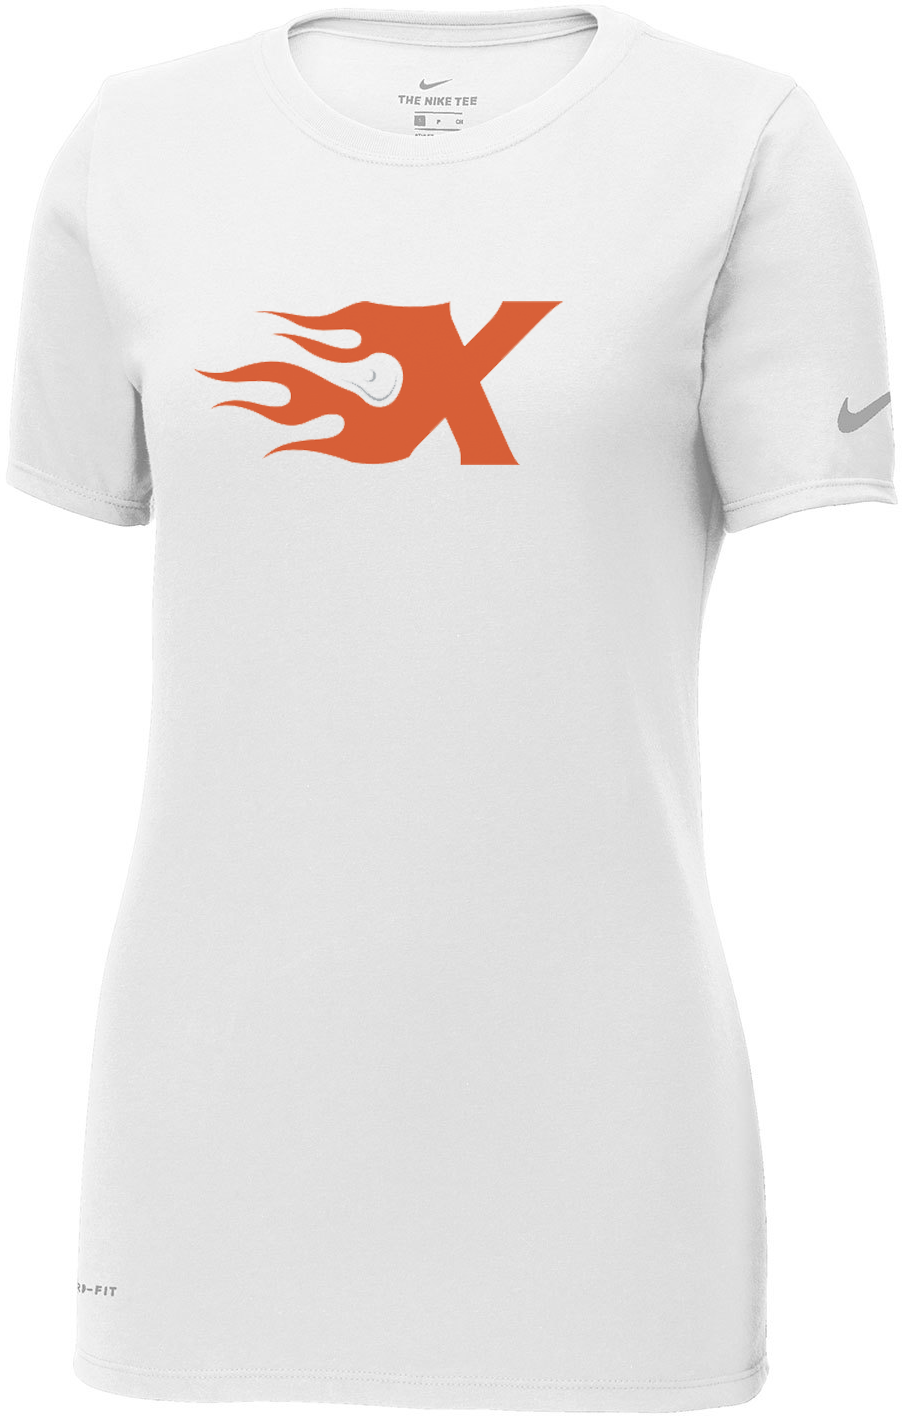 Xtreme Lacrosse White Nike Ladies Dri-FIT Tee